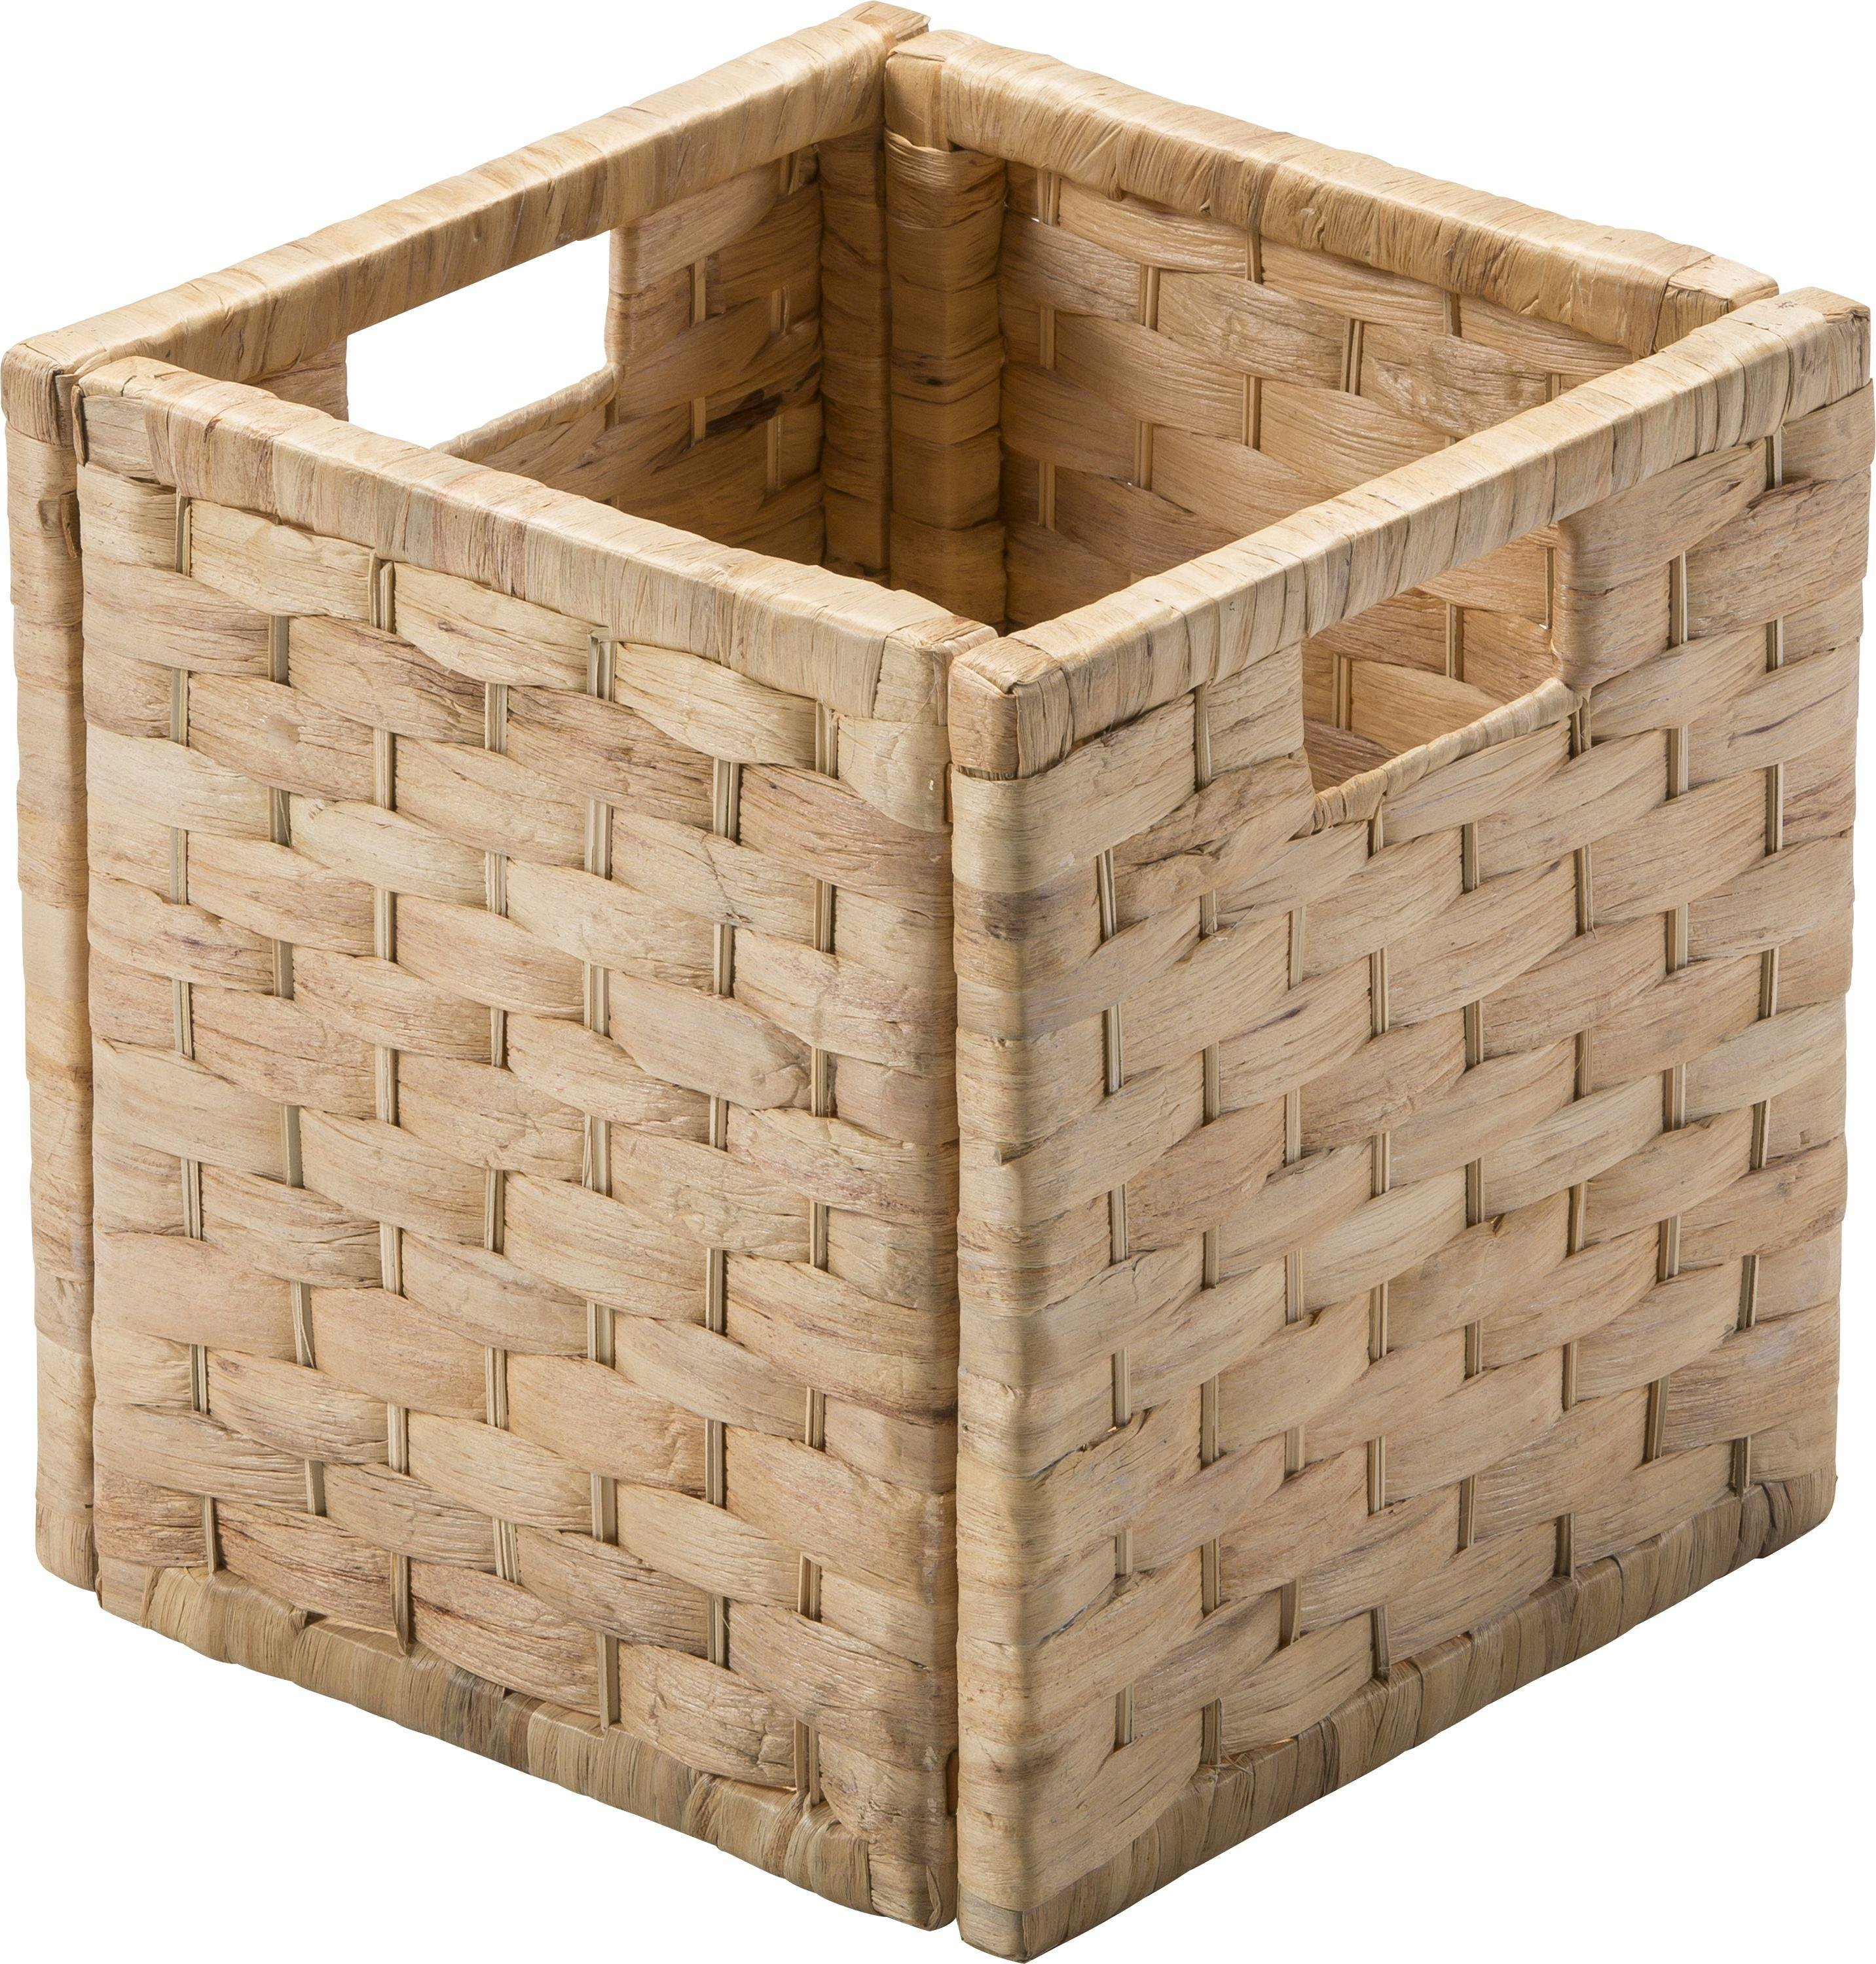 Argos Home Water Hyacinth Cubed Storage Basket - Small Weave